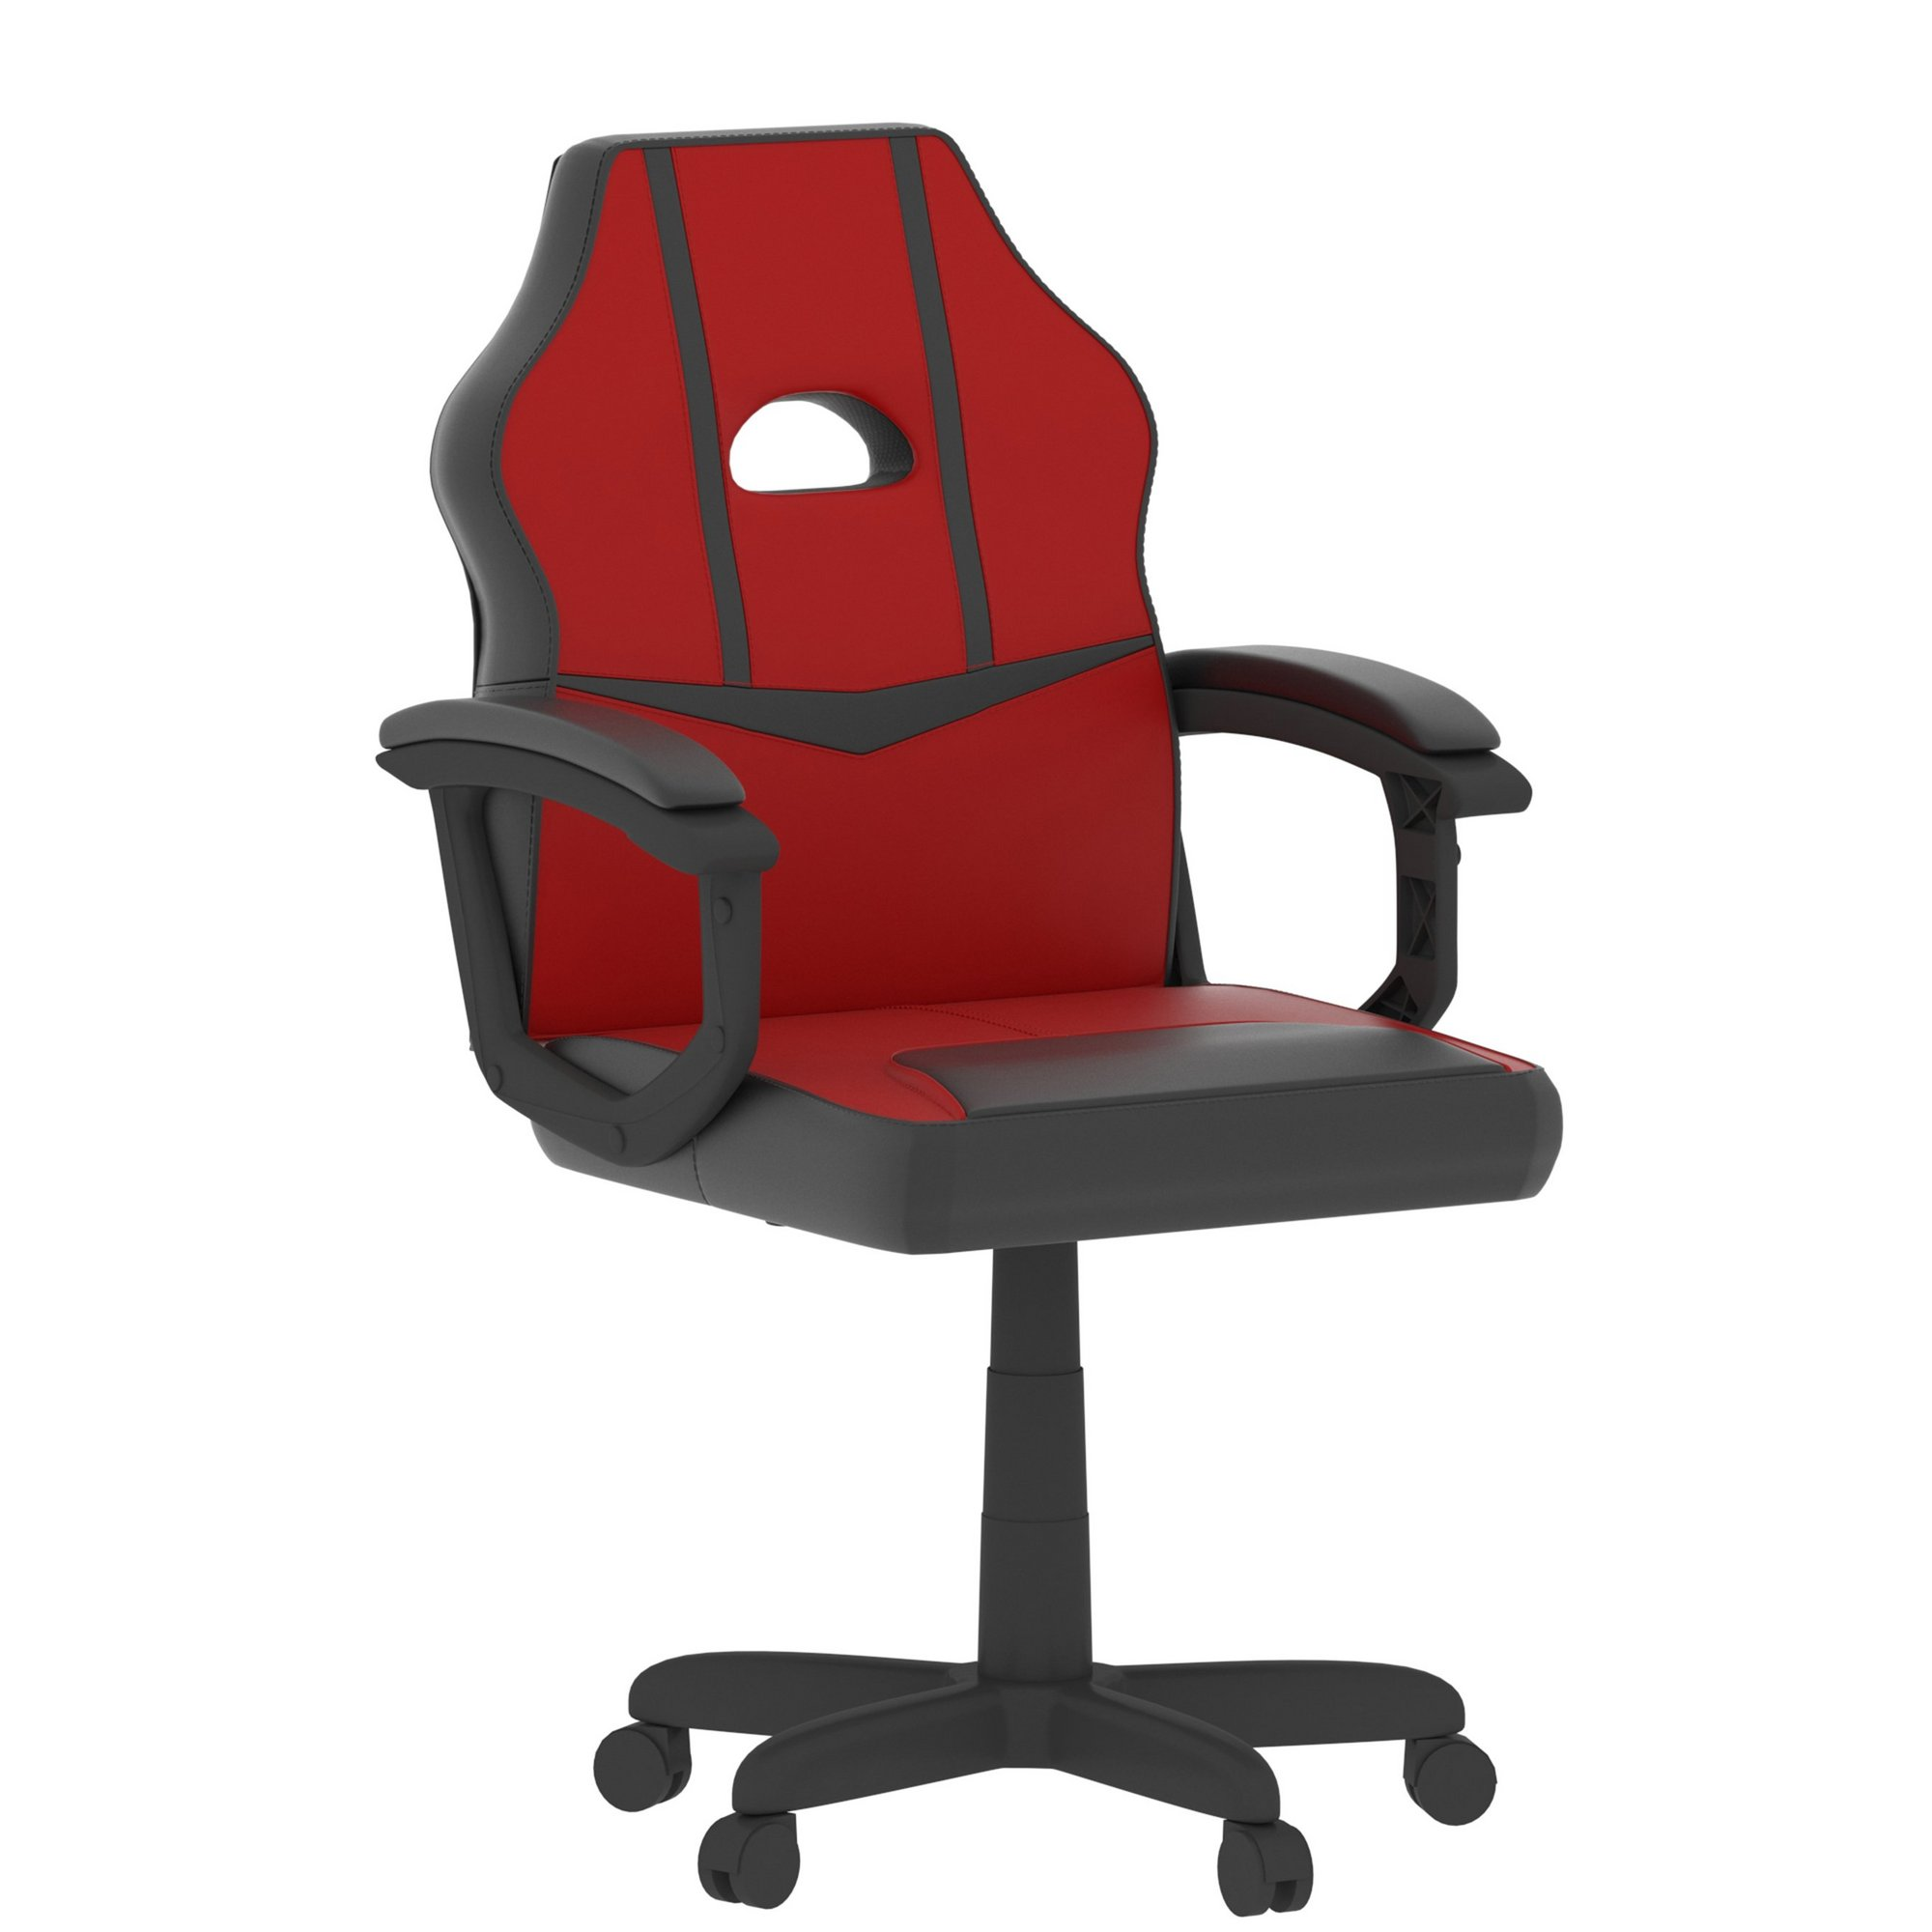 Image of Comet Office Chair